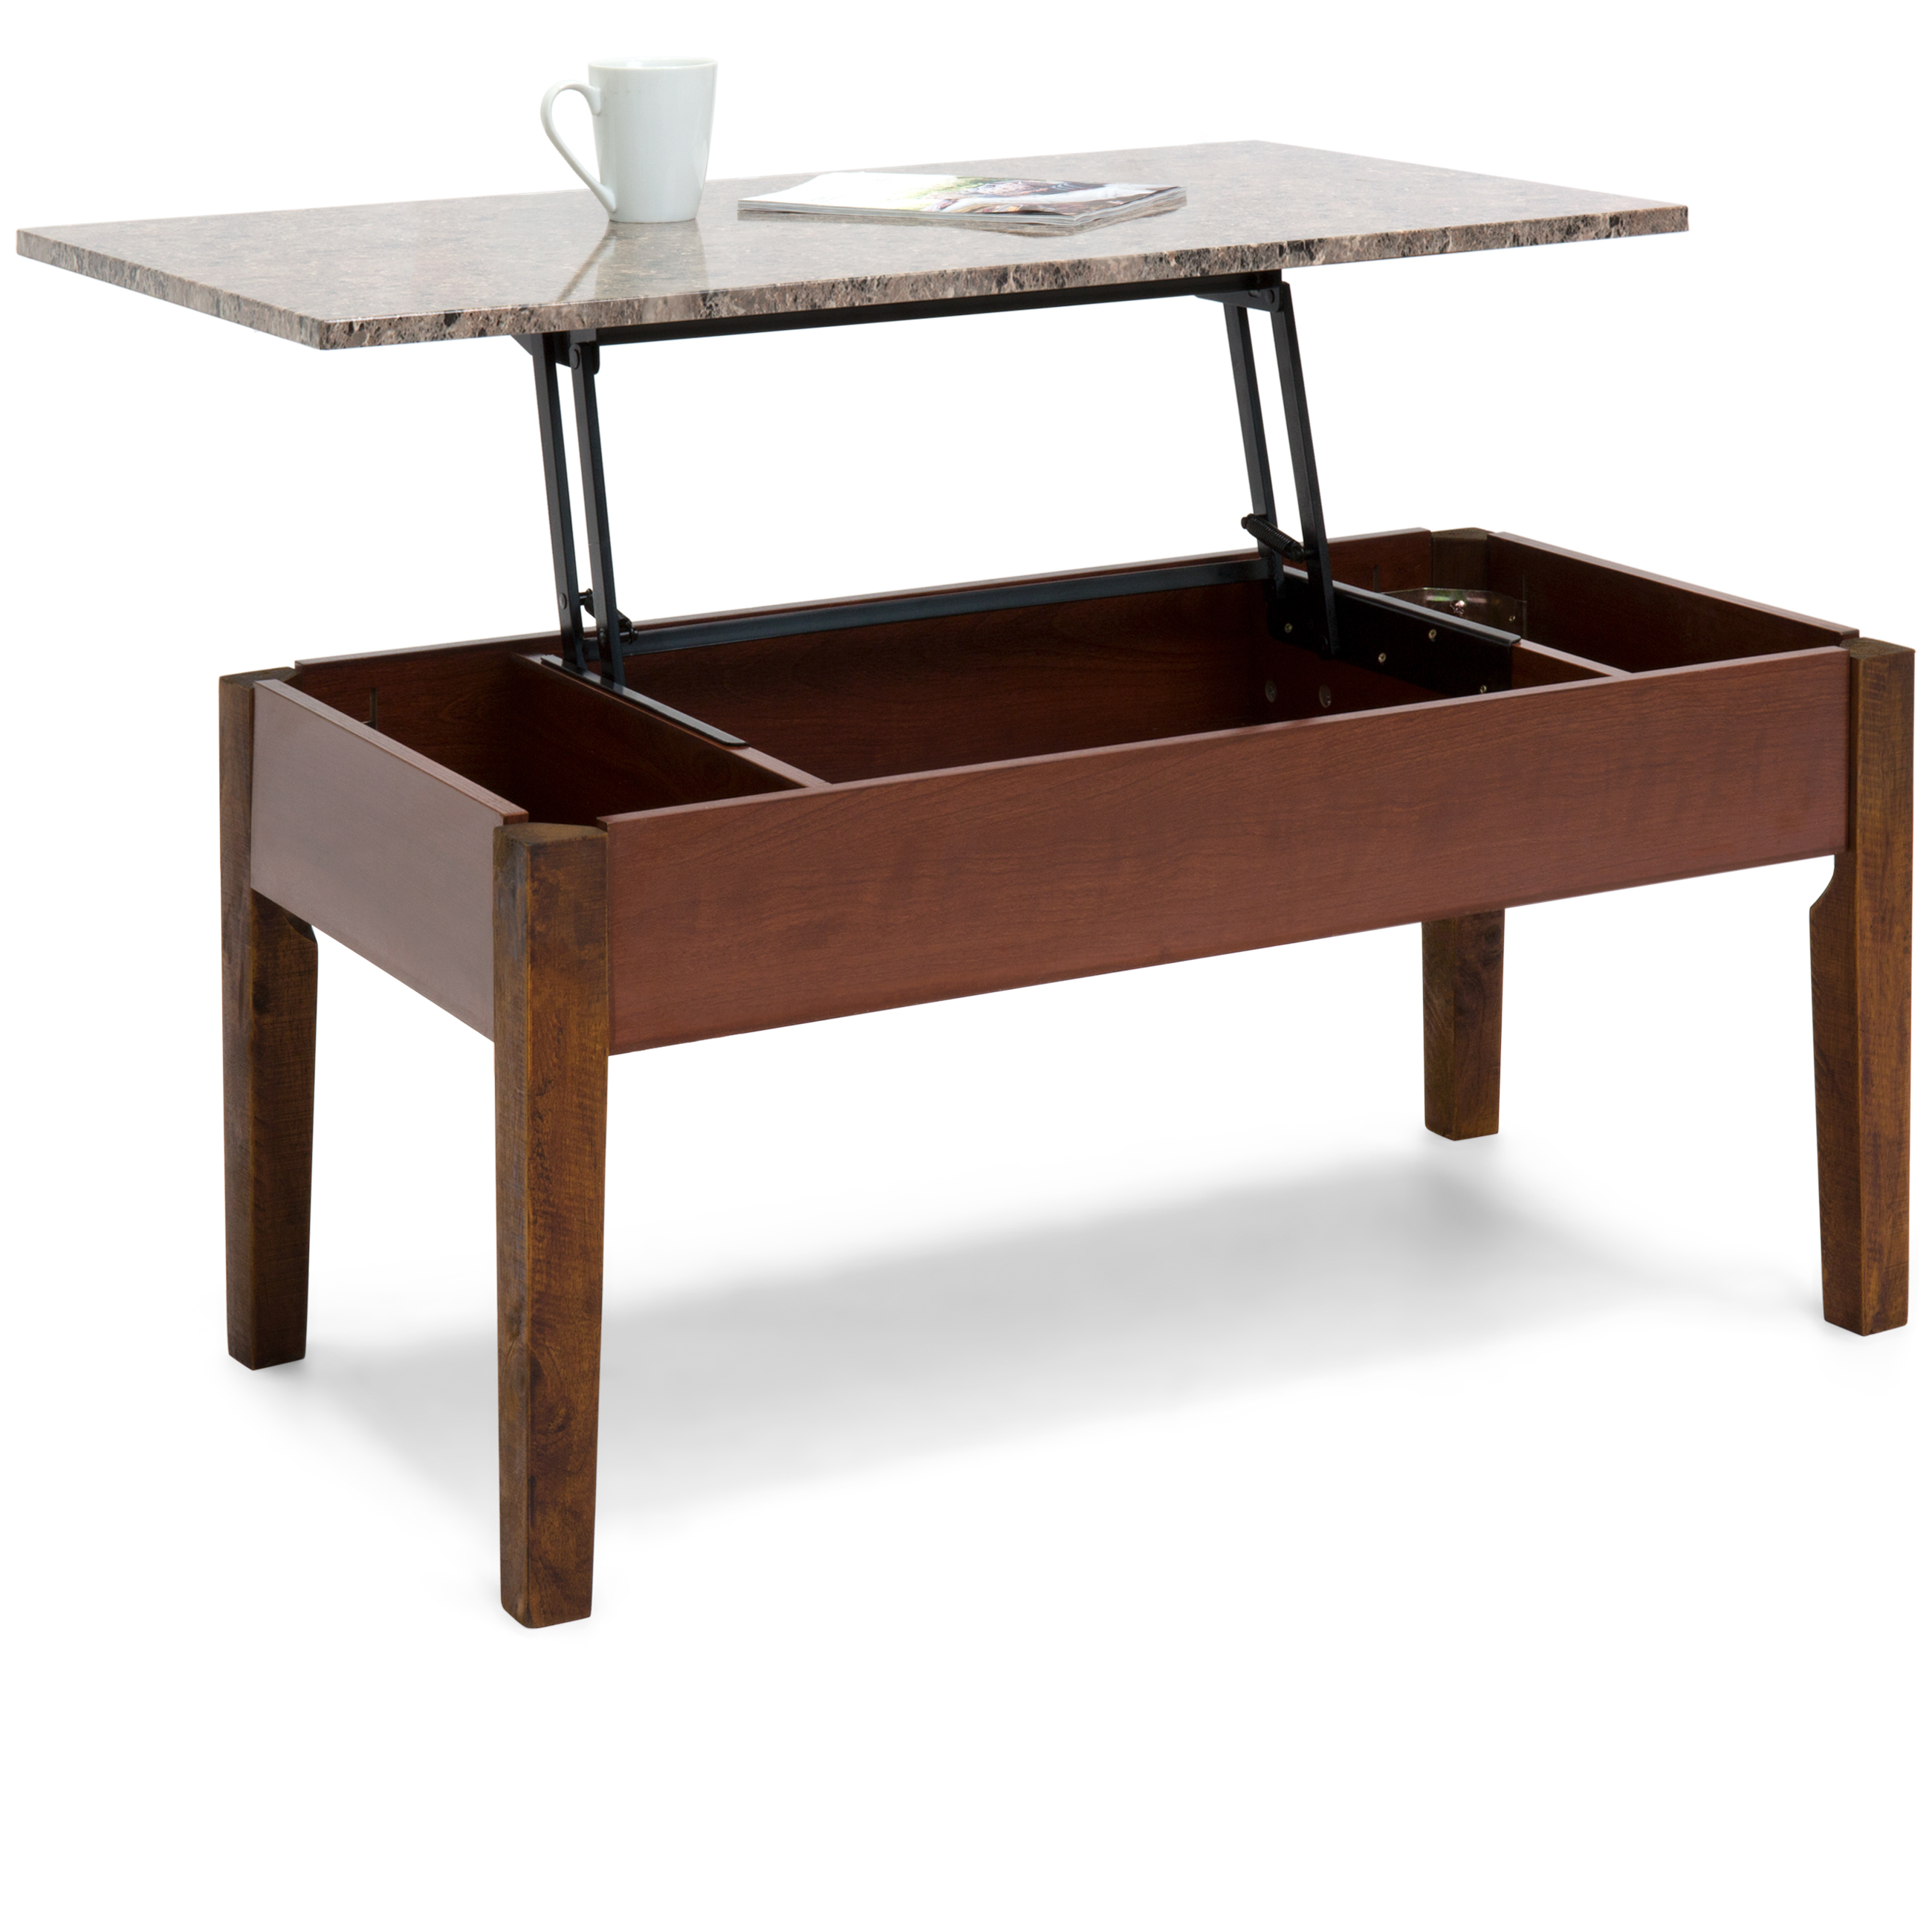 Best Choice Products Living Room Lift-up Coffee Table w/ Inner Compartment Space & Marble Design Top - Brown